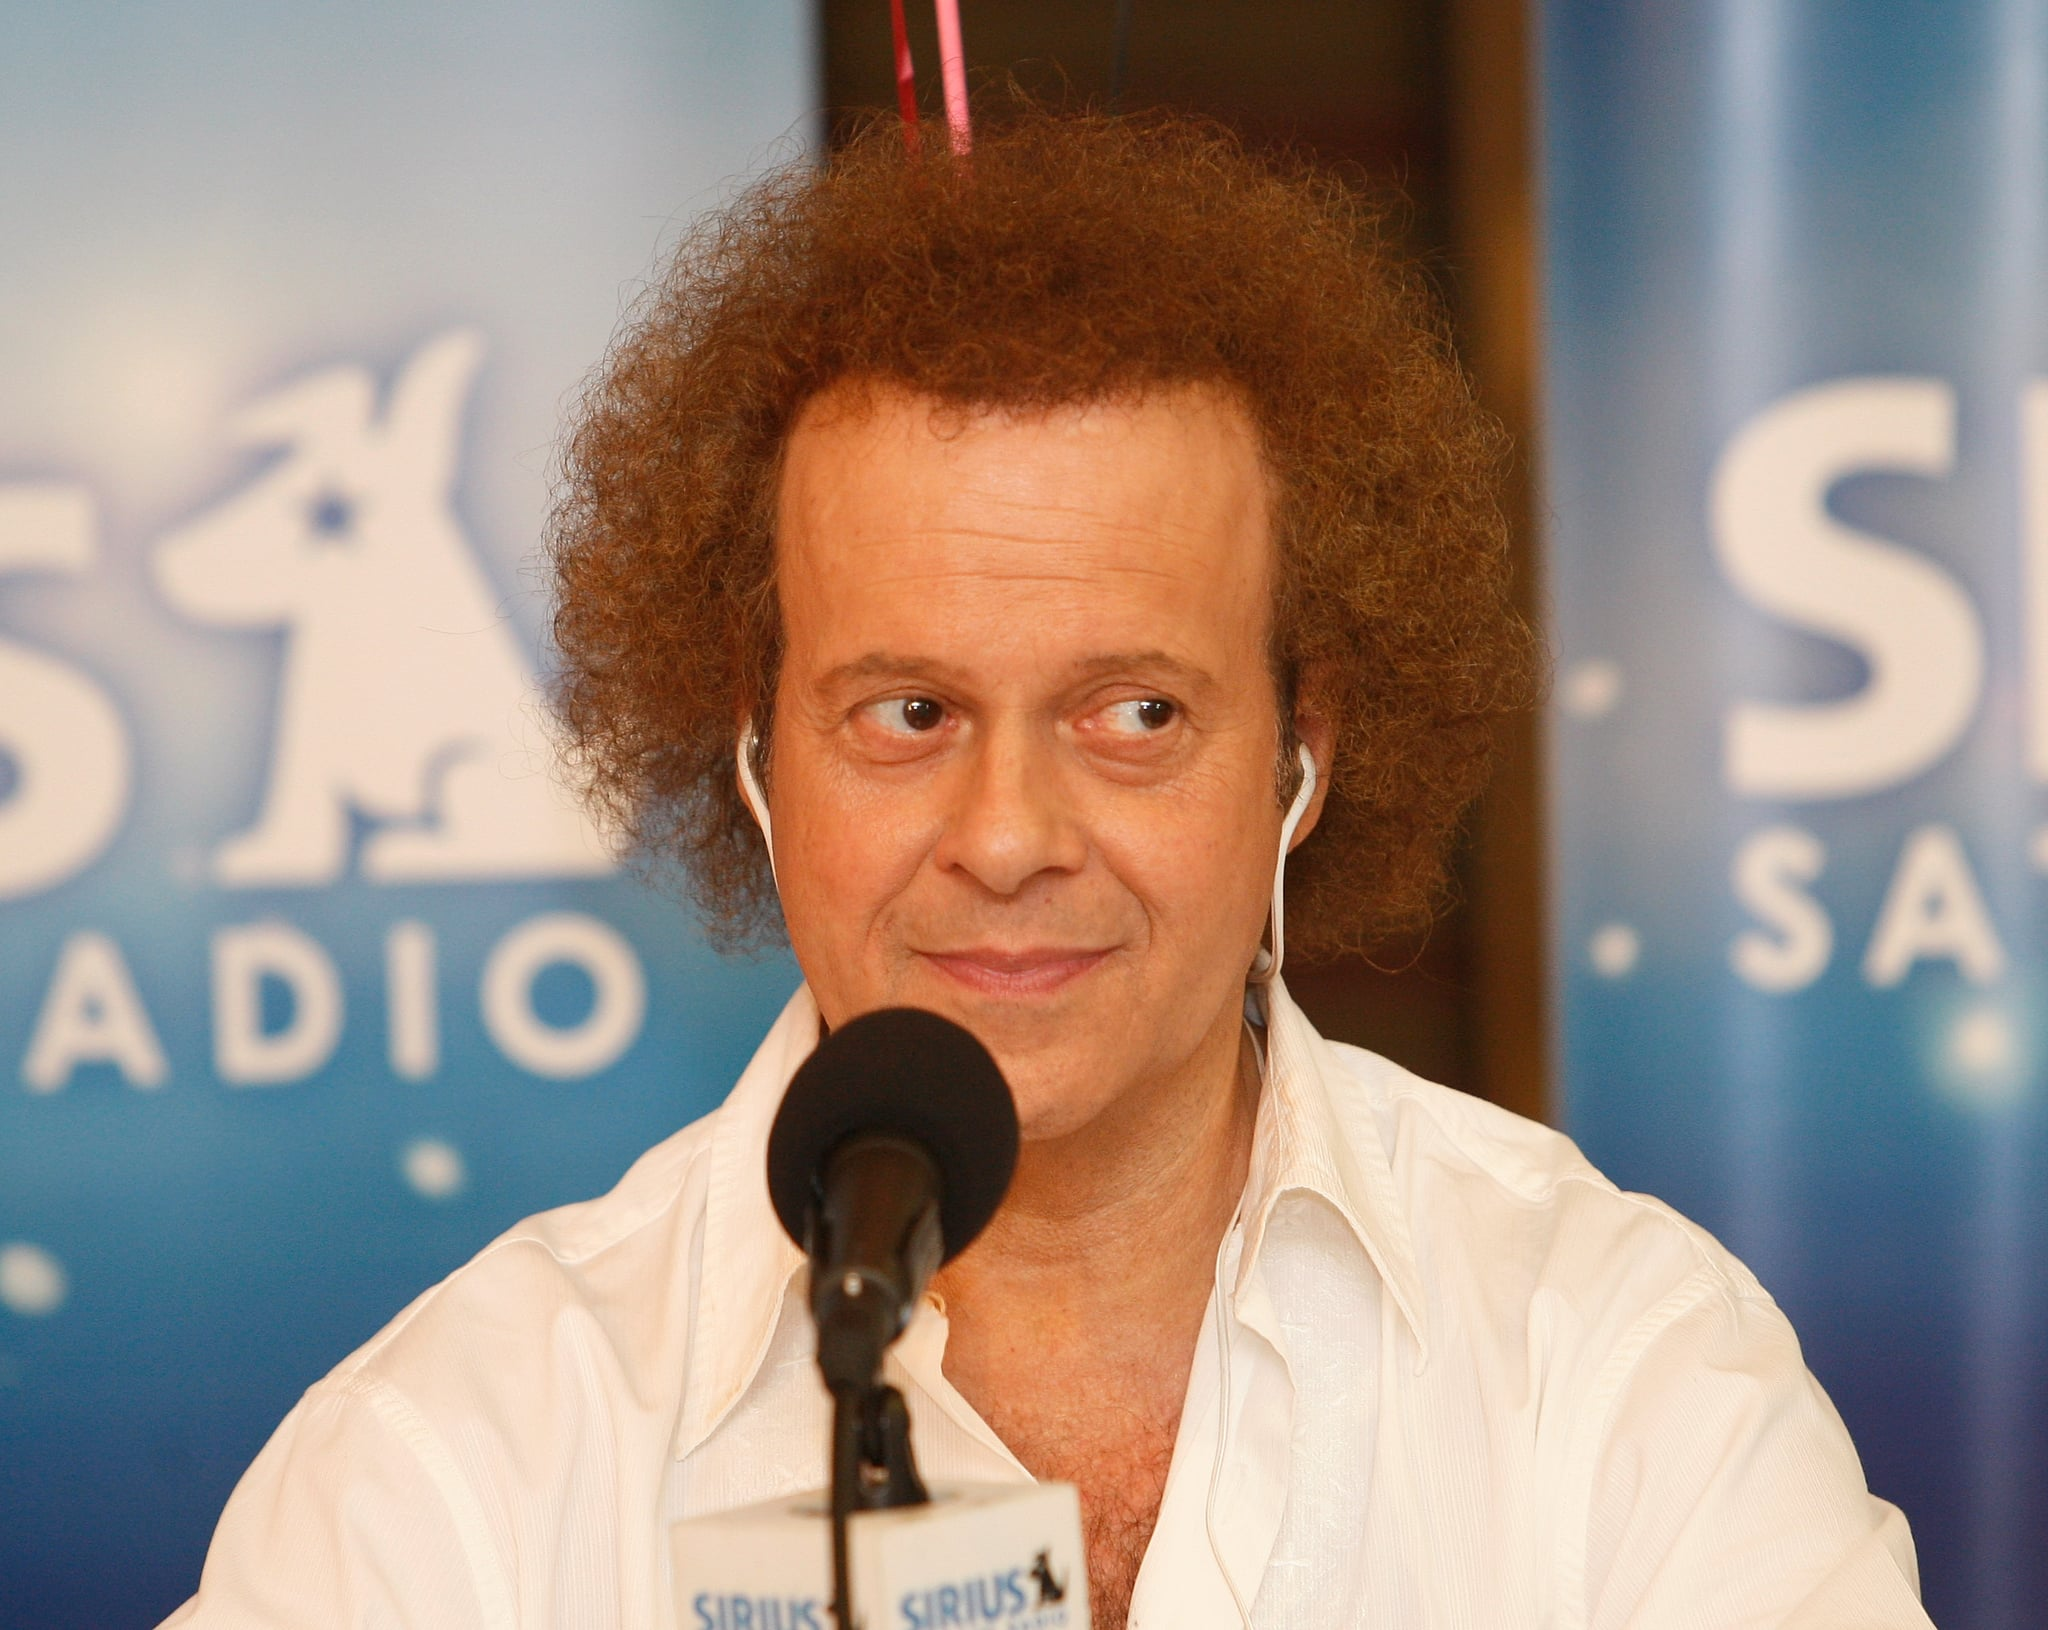 richard simmons 2016 today show. share this link richard simmons 2016 today show t